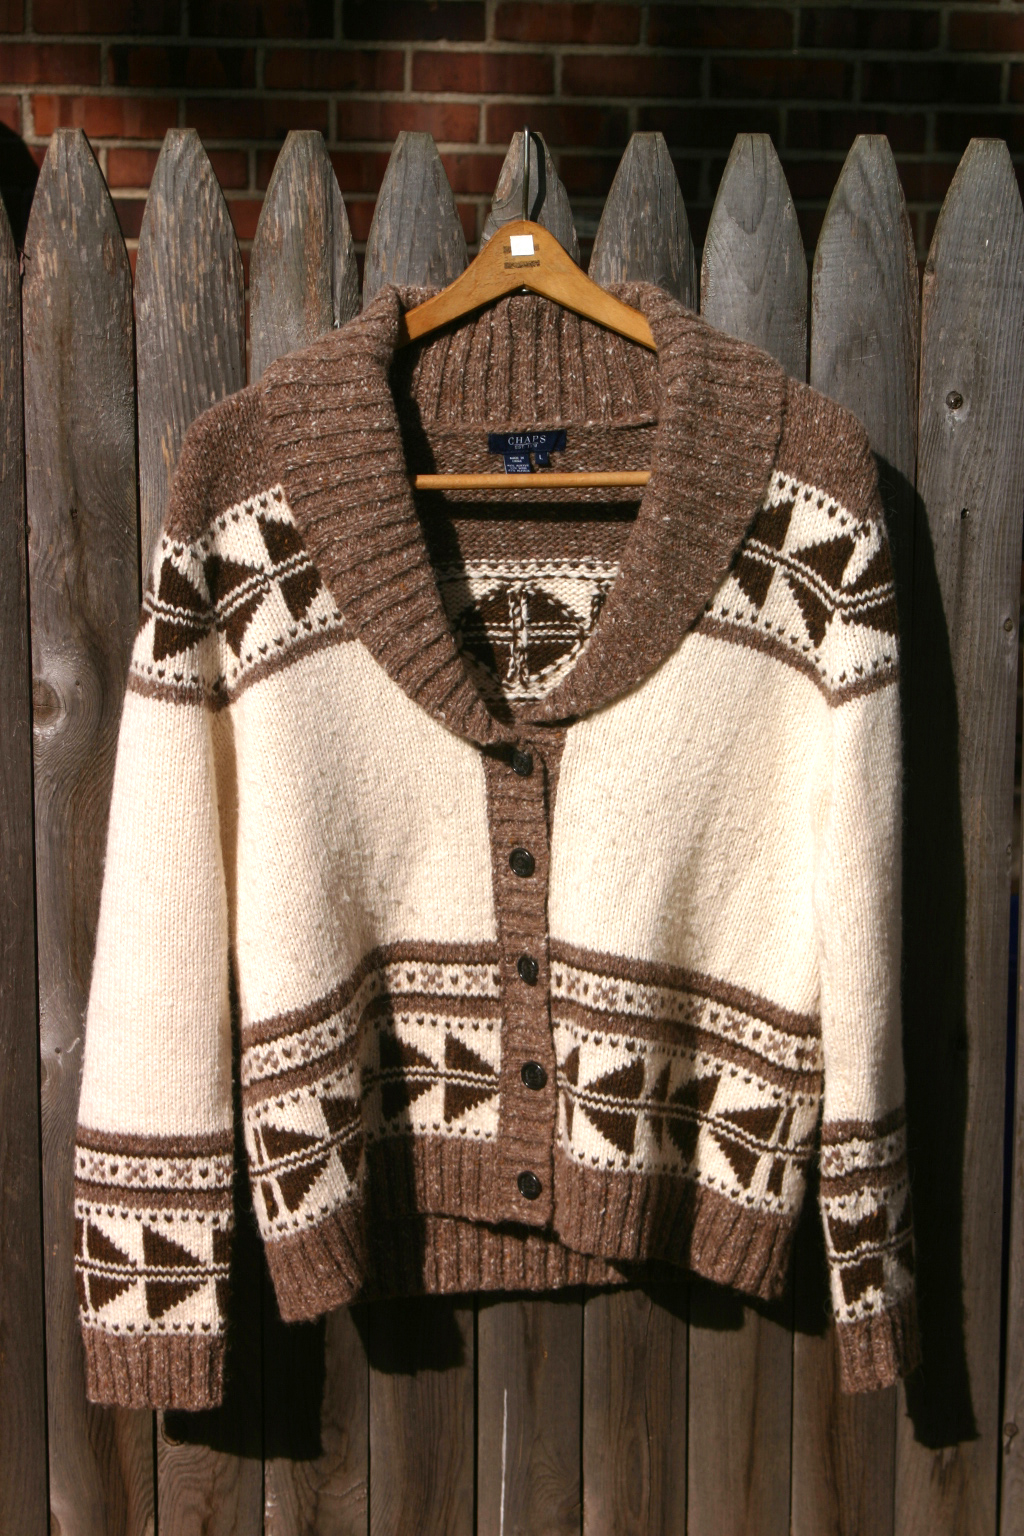 Thrift Shop Sweater Second Hand Ladies Chaps Lg Cardigan Cowichan Ralph Lauren Polo